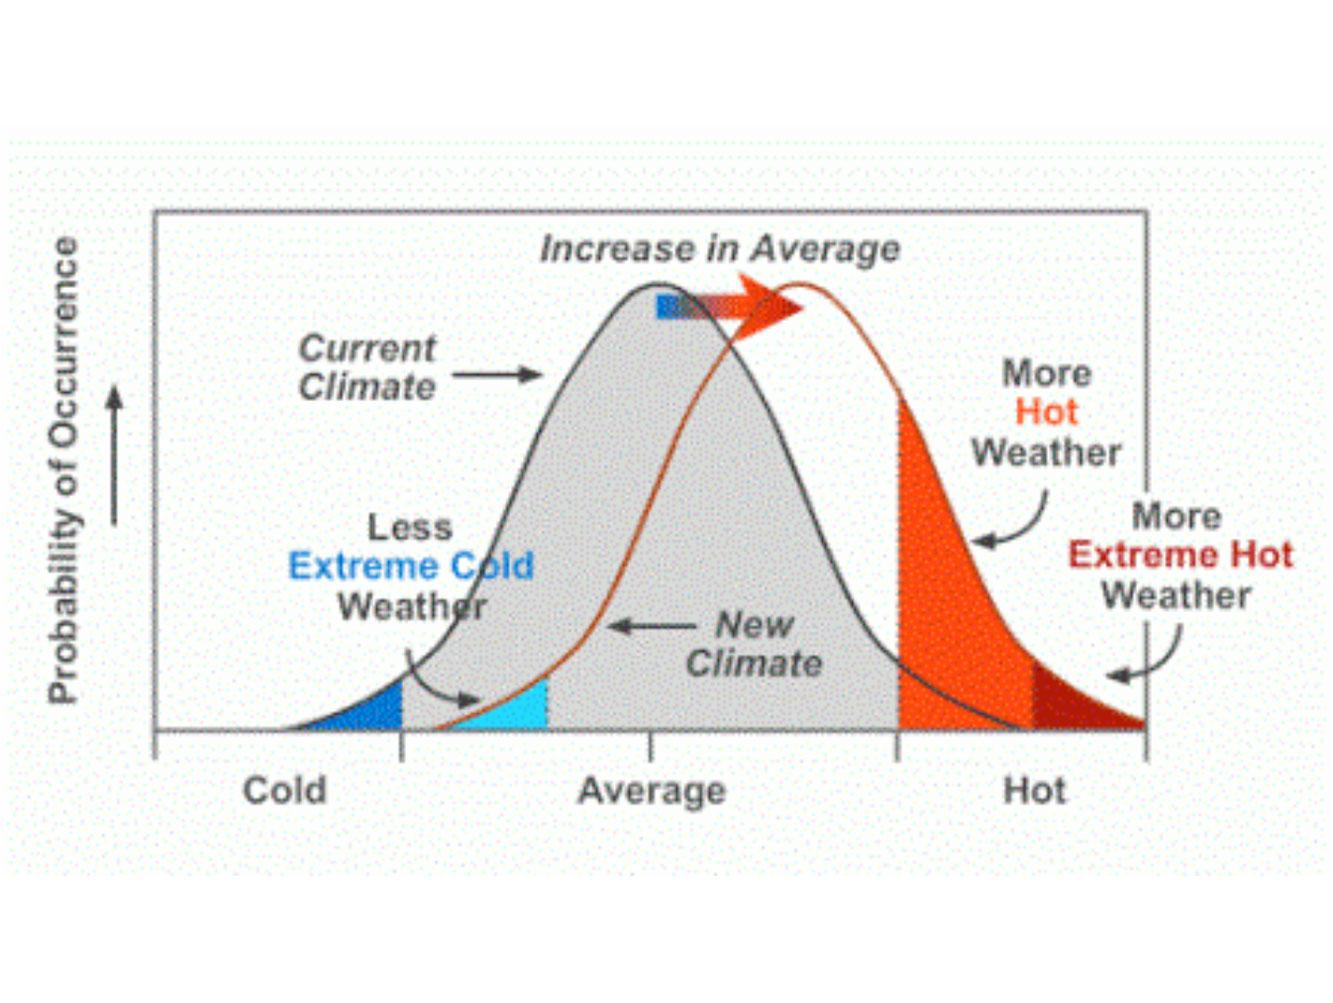 https://www.epa.gov/climate-change-science/understanding-link-between-climate-change-and-extreme-weather